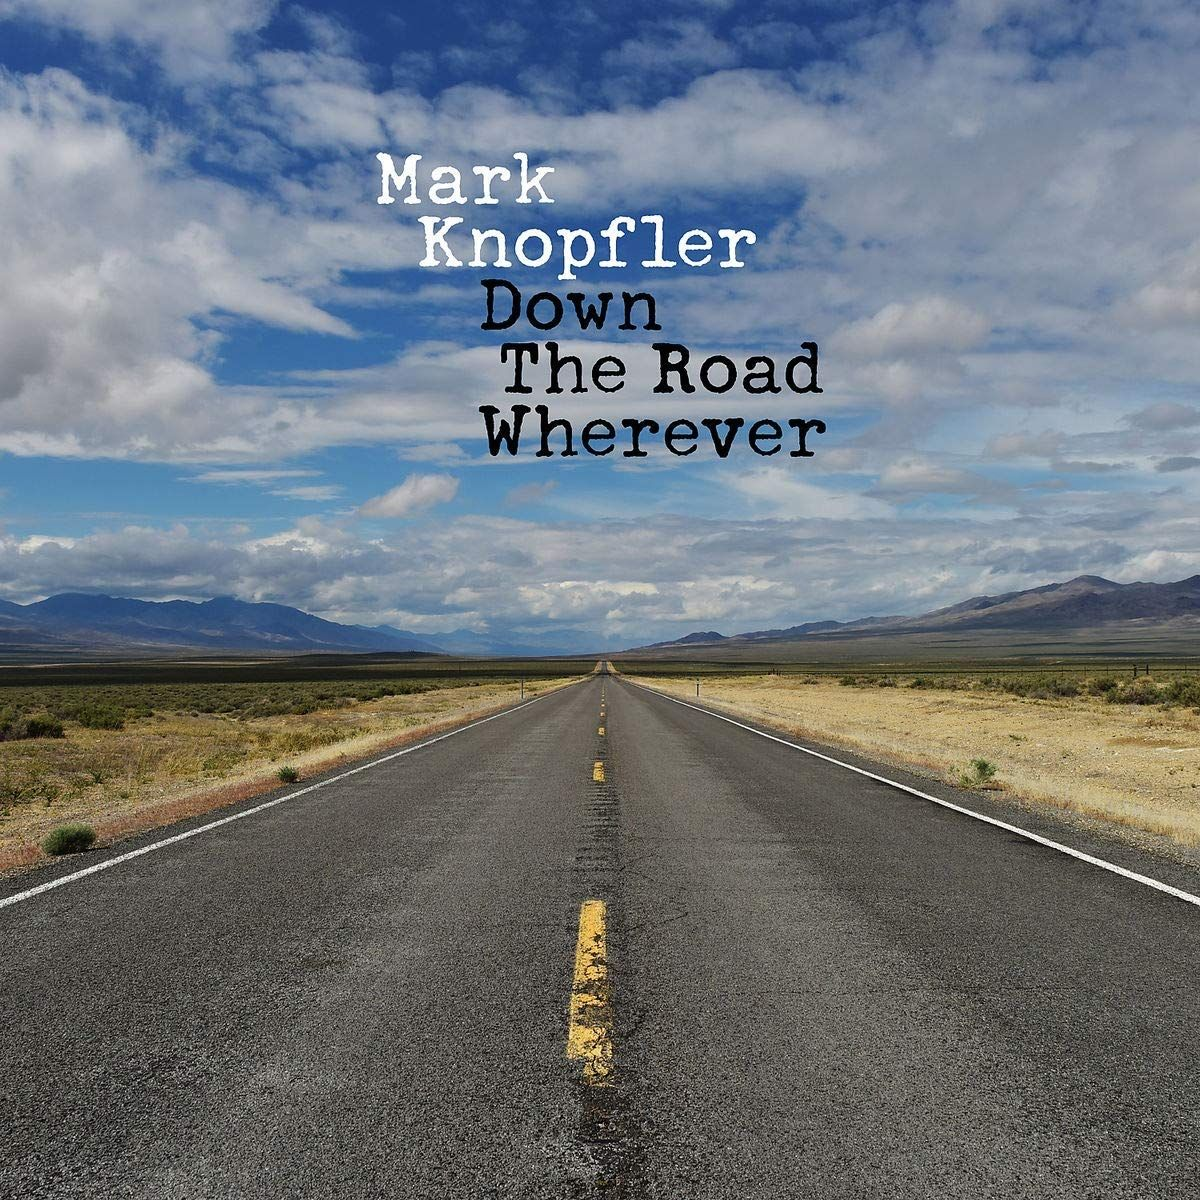 Марк Нопфлер Mark Knopfler. Down The Road Wherever (LP) original new innolux 5 6 inch at056tn53 v 1 lcd screen with touch